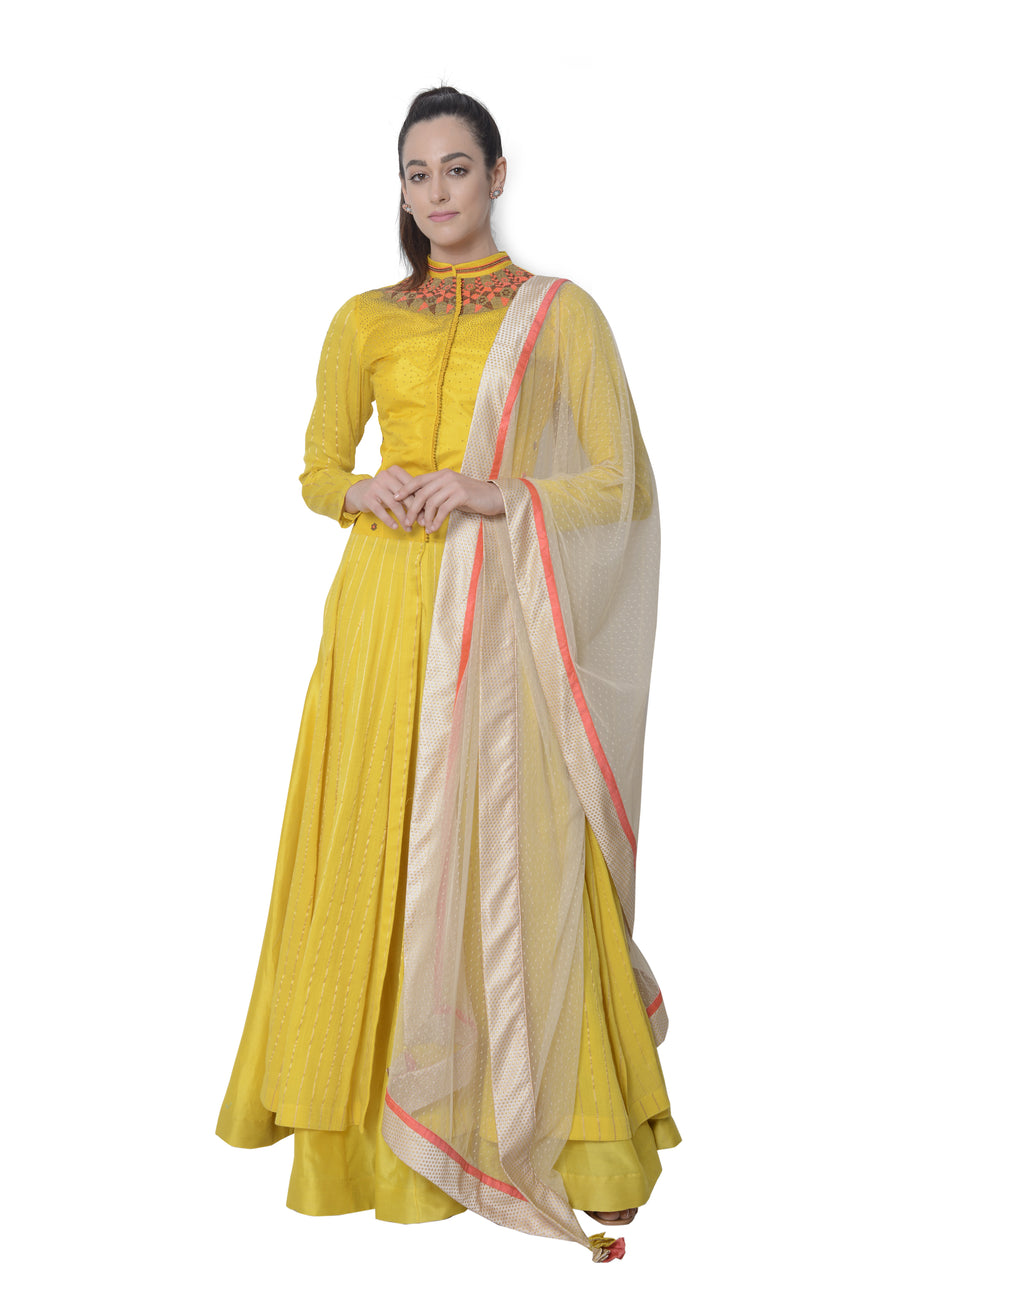 5X By Ajit Kumar - Light Mustard Elongated Anarkali - INDIASPOPUP.COM